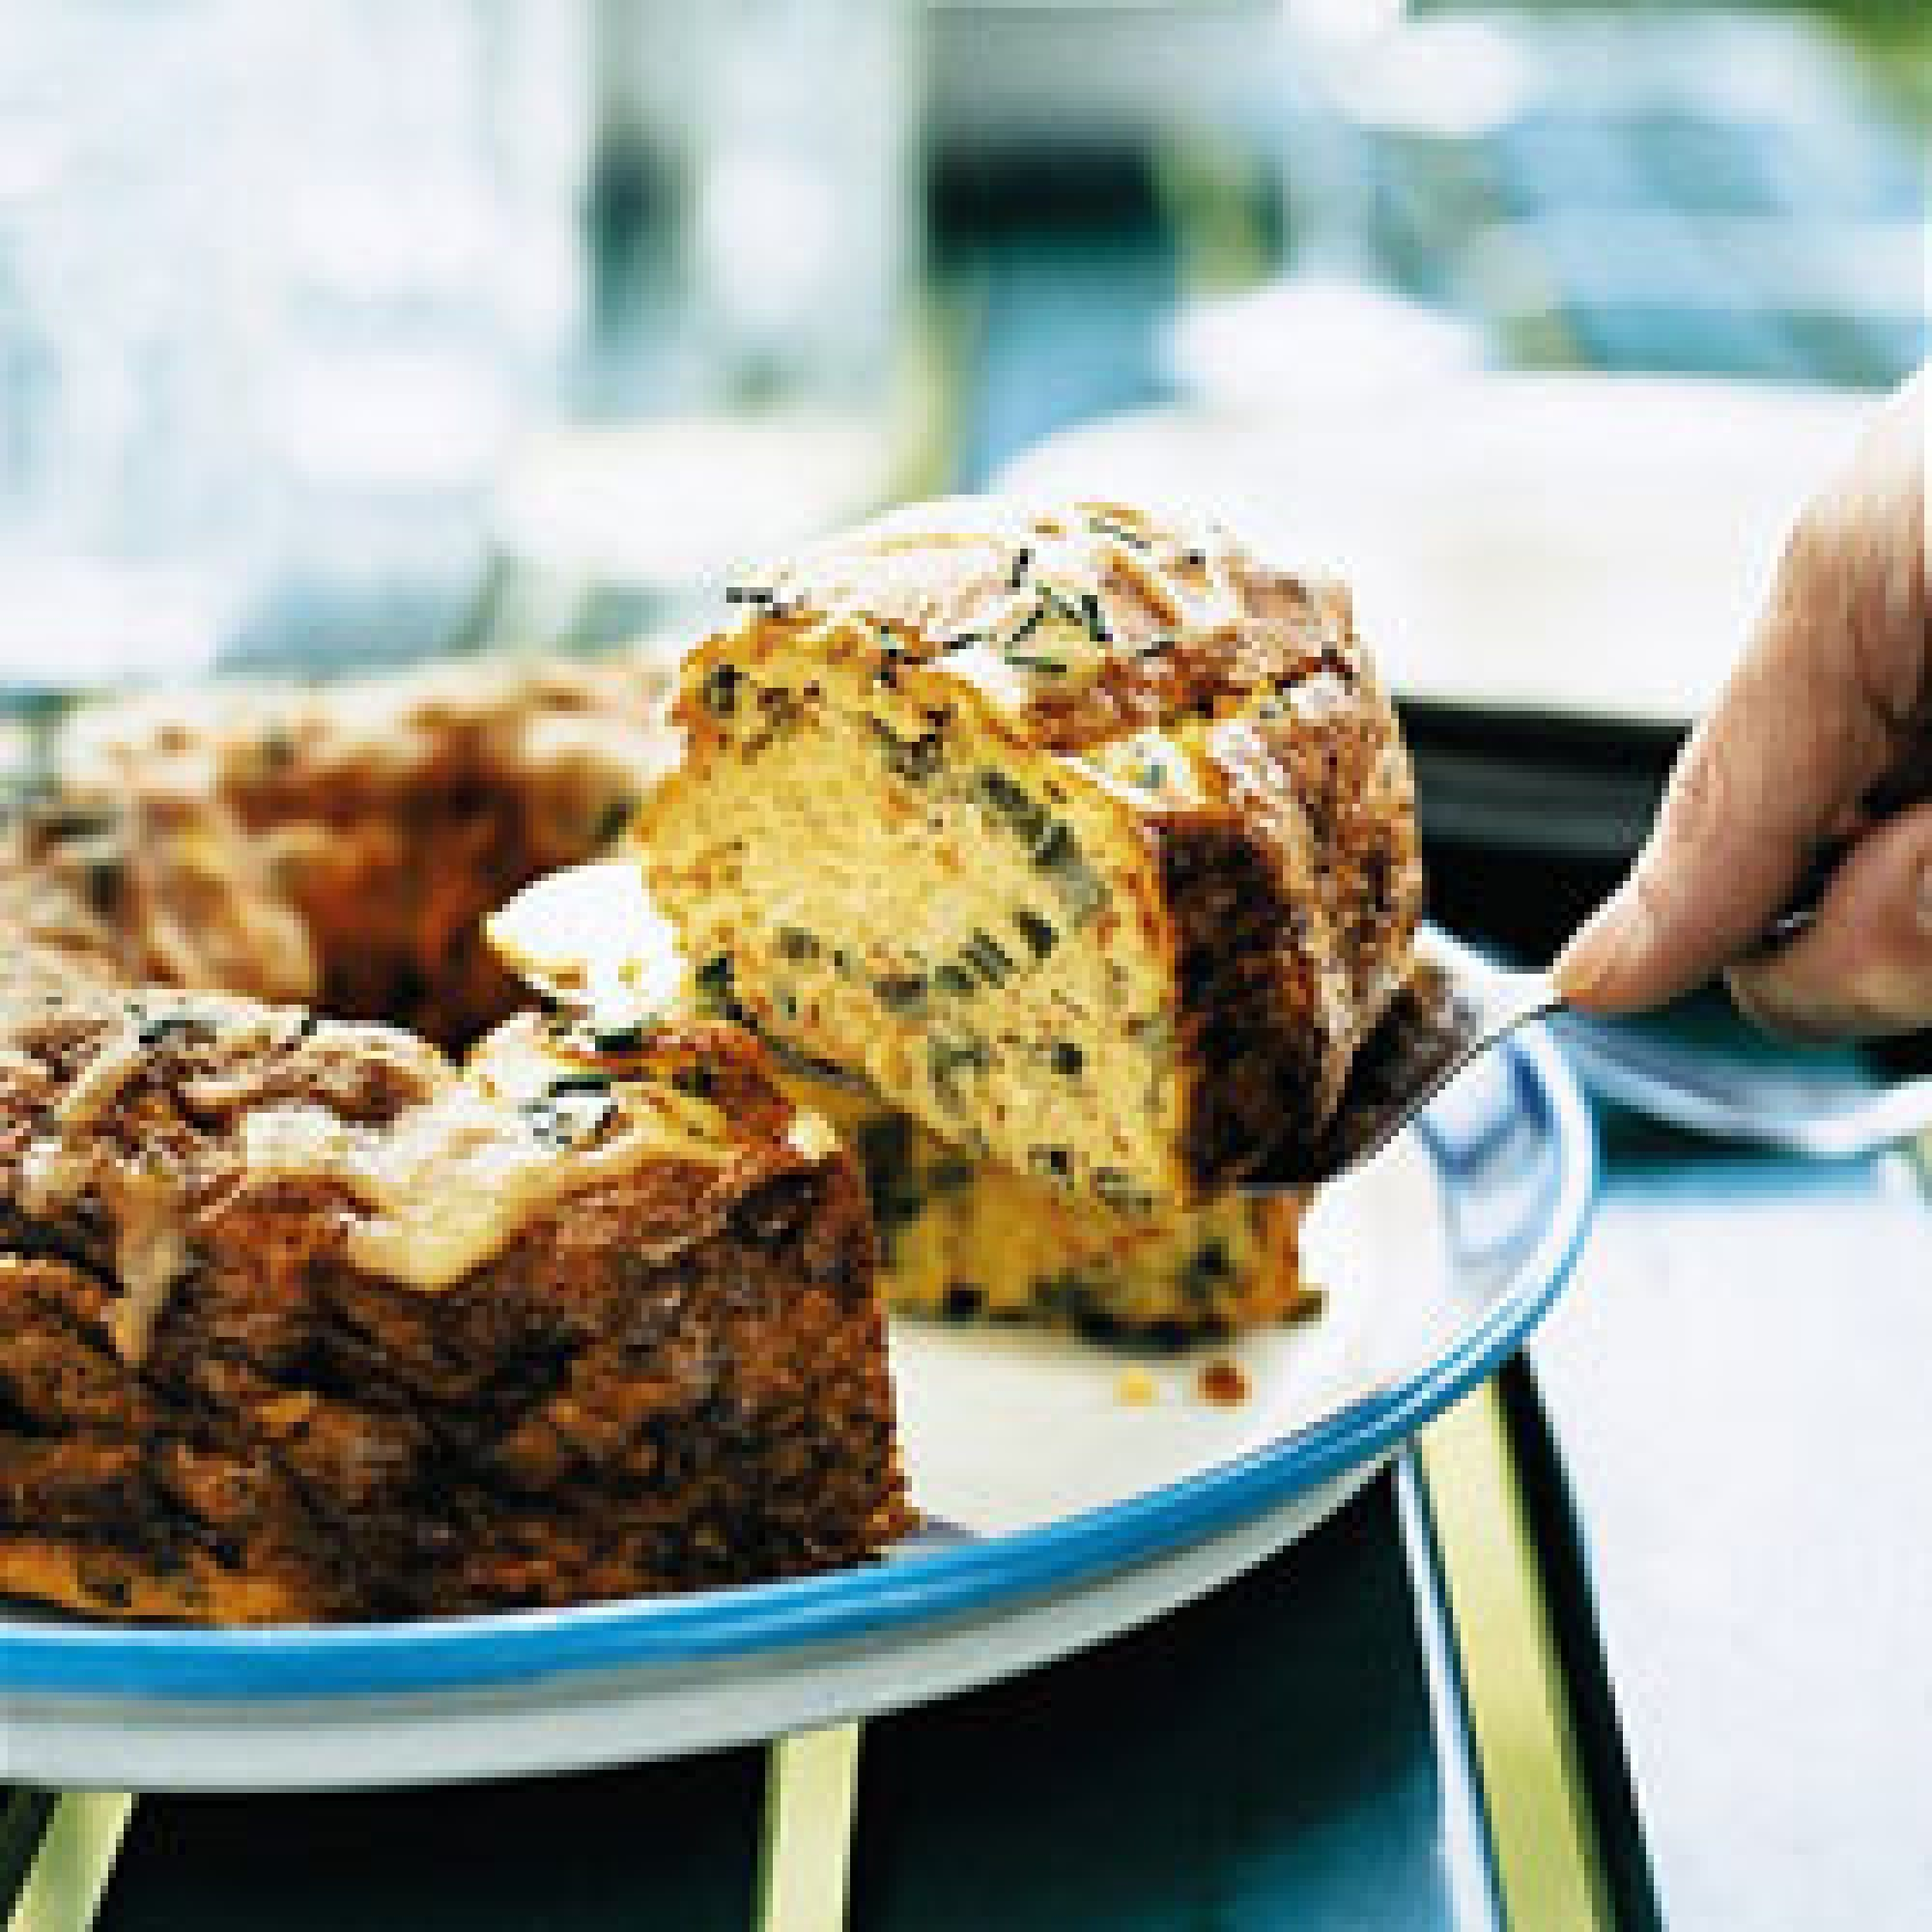 """This recipe appeared with the feature """"The Incredible Island of Food and Wine"""" by Chloe Osborne (April 2004), a close look at the culinary world of Tasmania. Frittatas are typically made on the stove in a skillet, but preparing them in a Bundt pan offers a convenient and beautiful alternative for a festive brunch."""